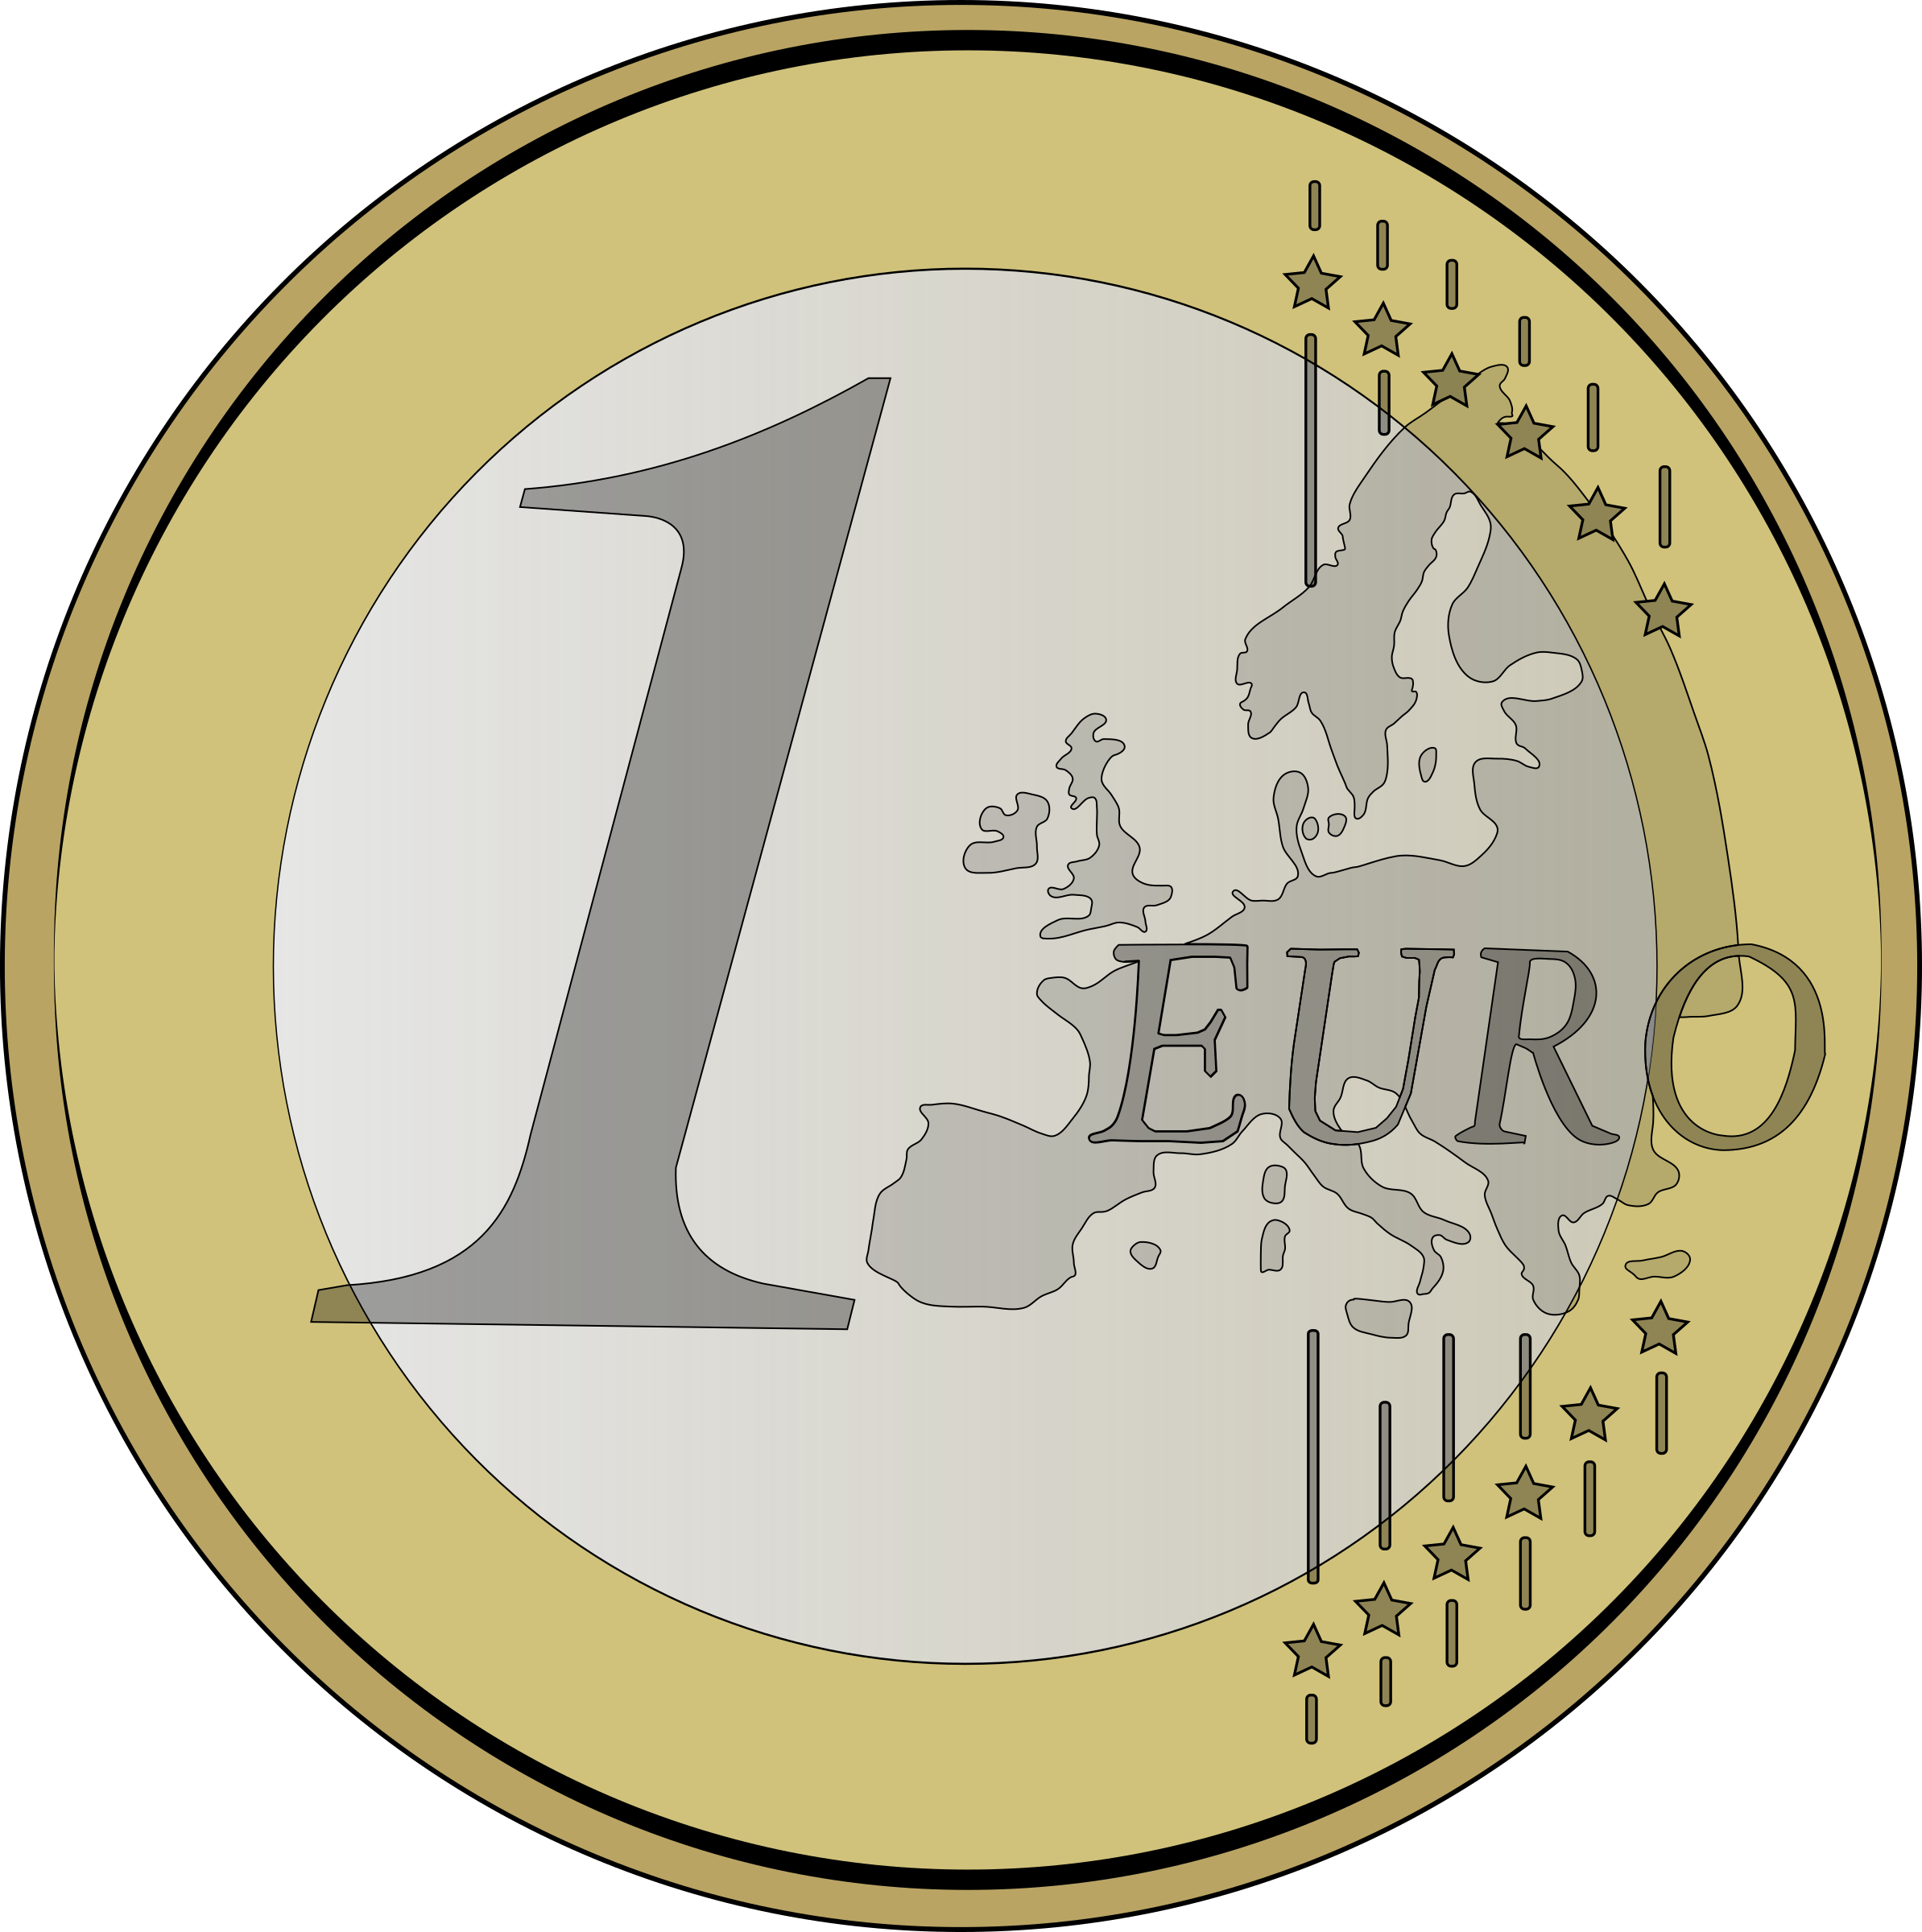 Coin clipart bill coin. Euro png images transparent